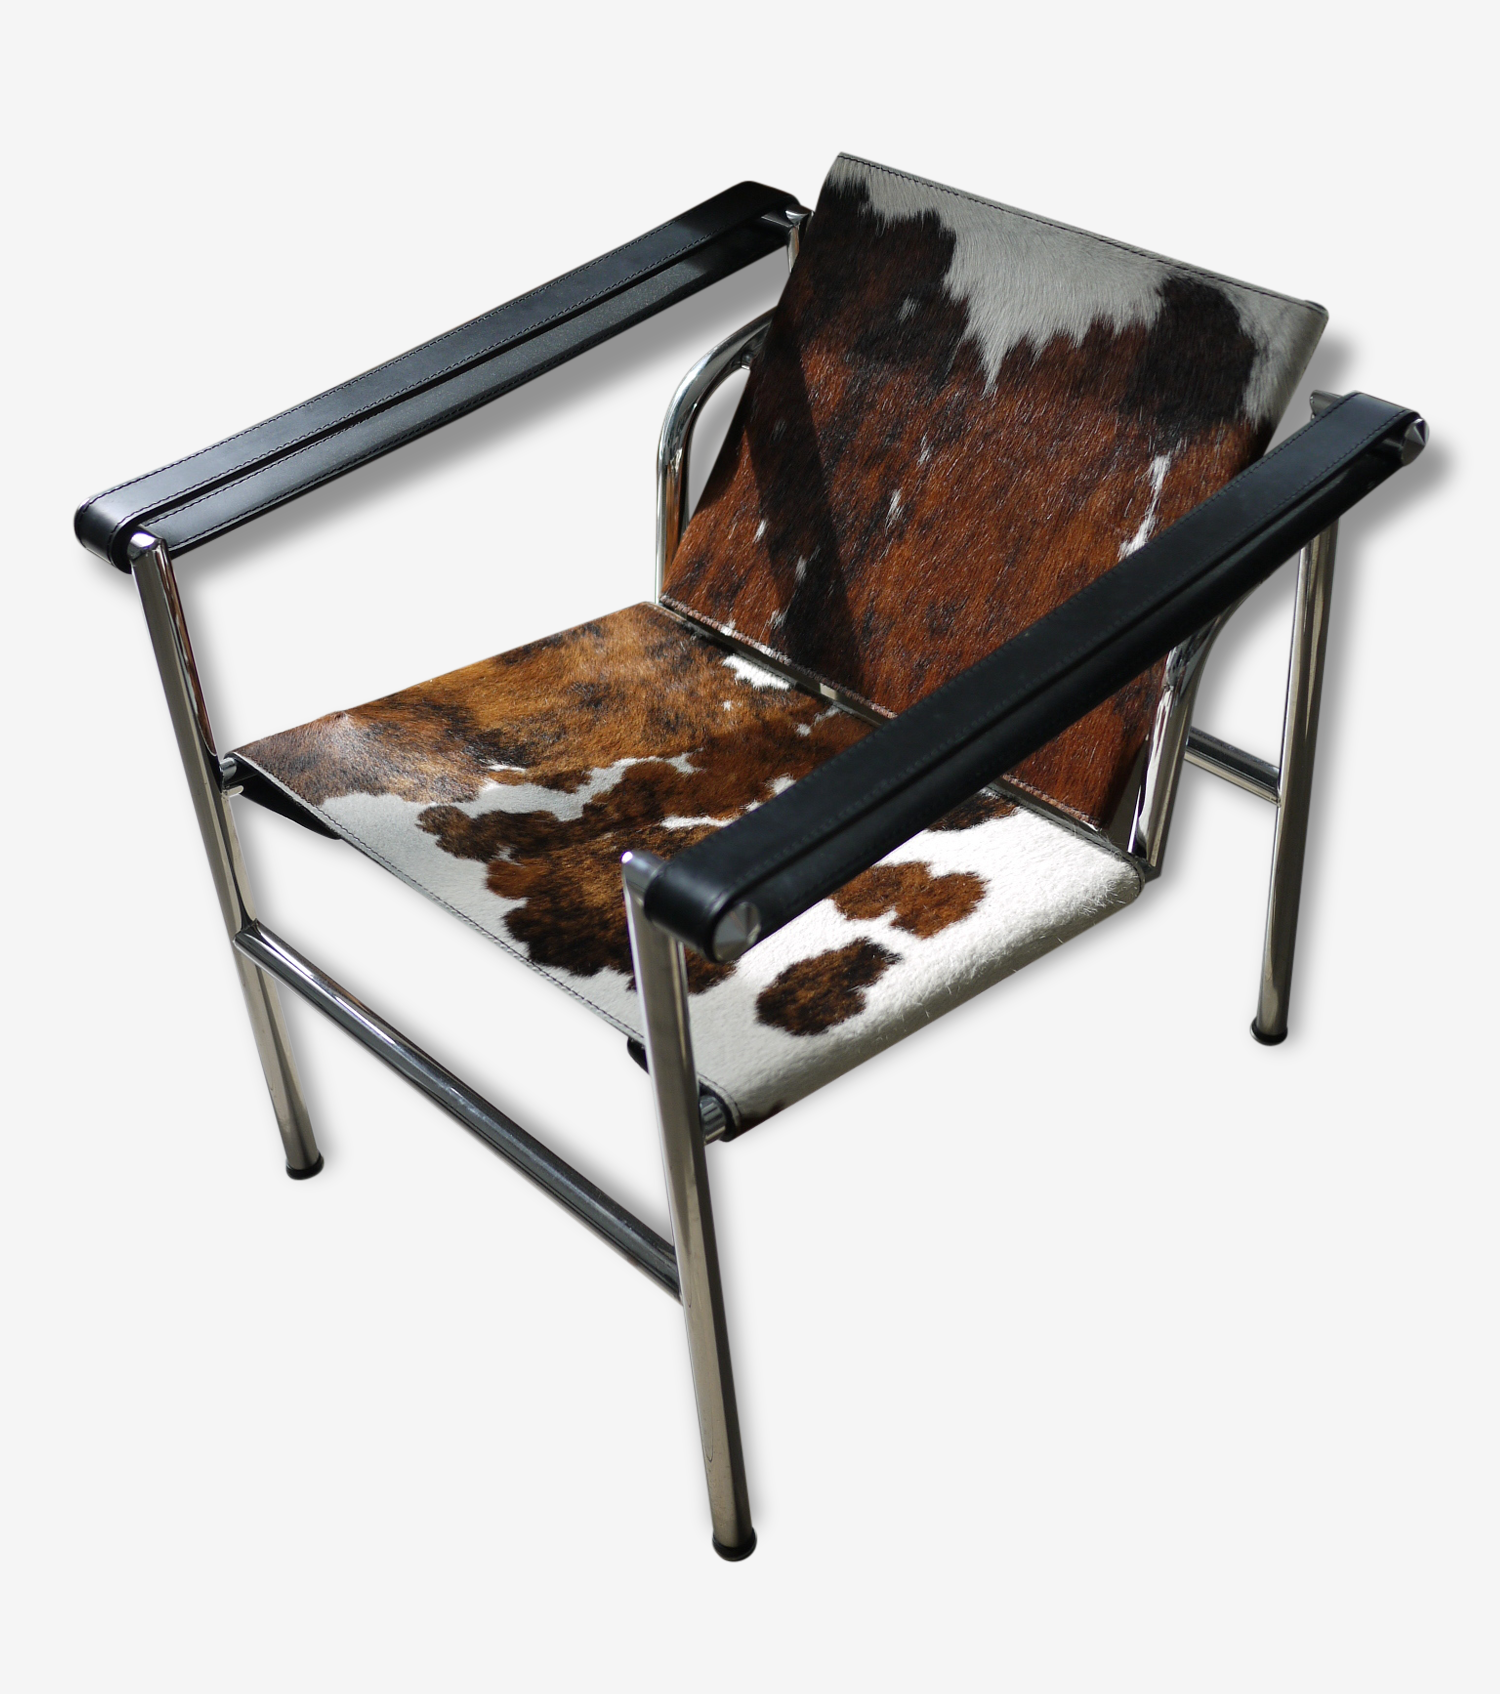 Chaise Lc1 reproduction - chaise lc1 le corbusier - pony marron - skin - white